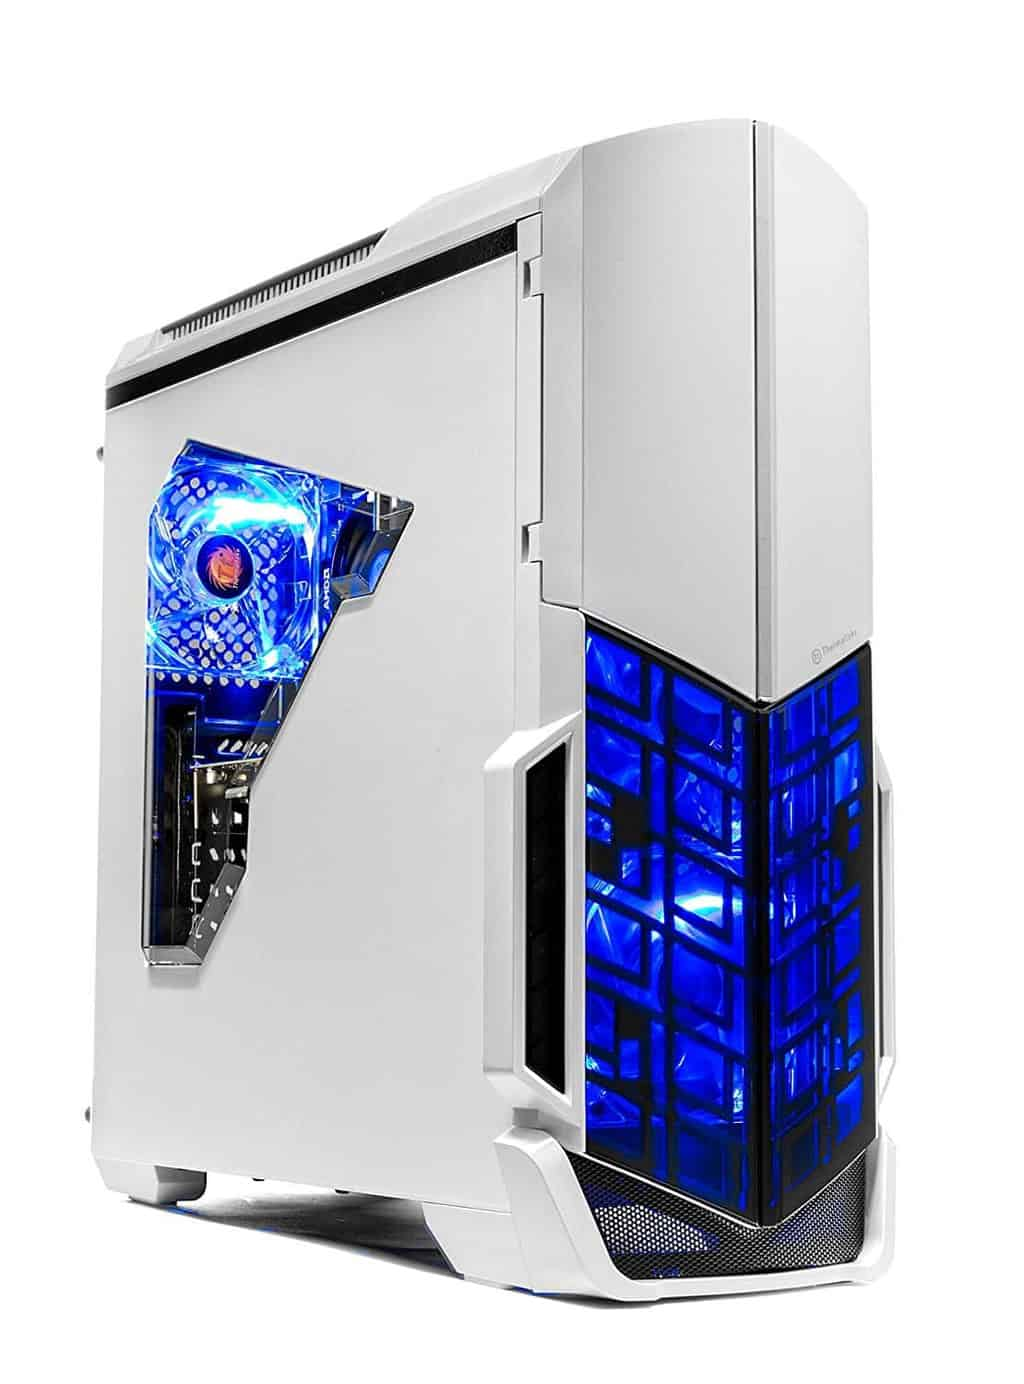 Incredible Best 600 Gaming Pc Ultra Computer Build September 2019 Home Interior And Landscaping Oversignezvosmurscom